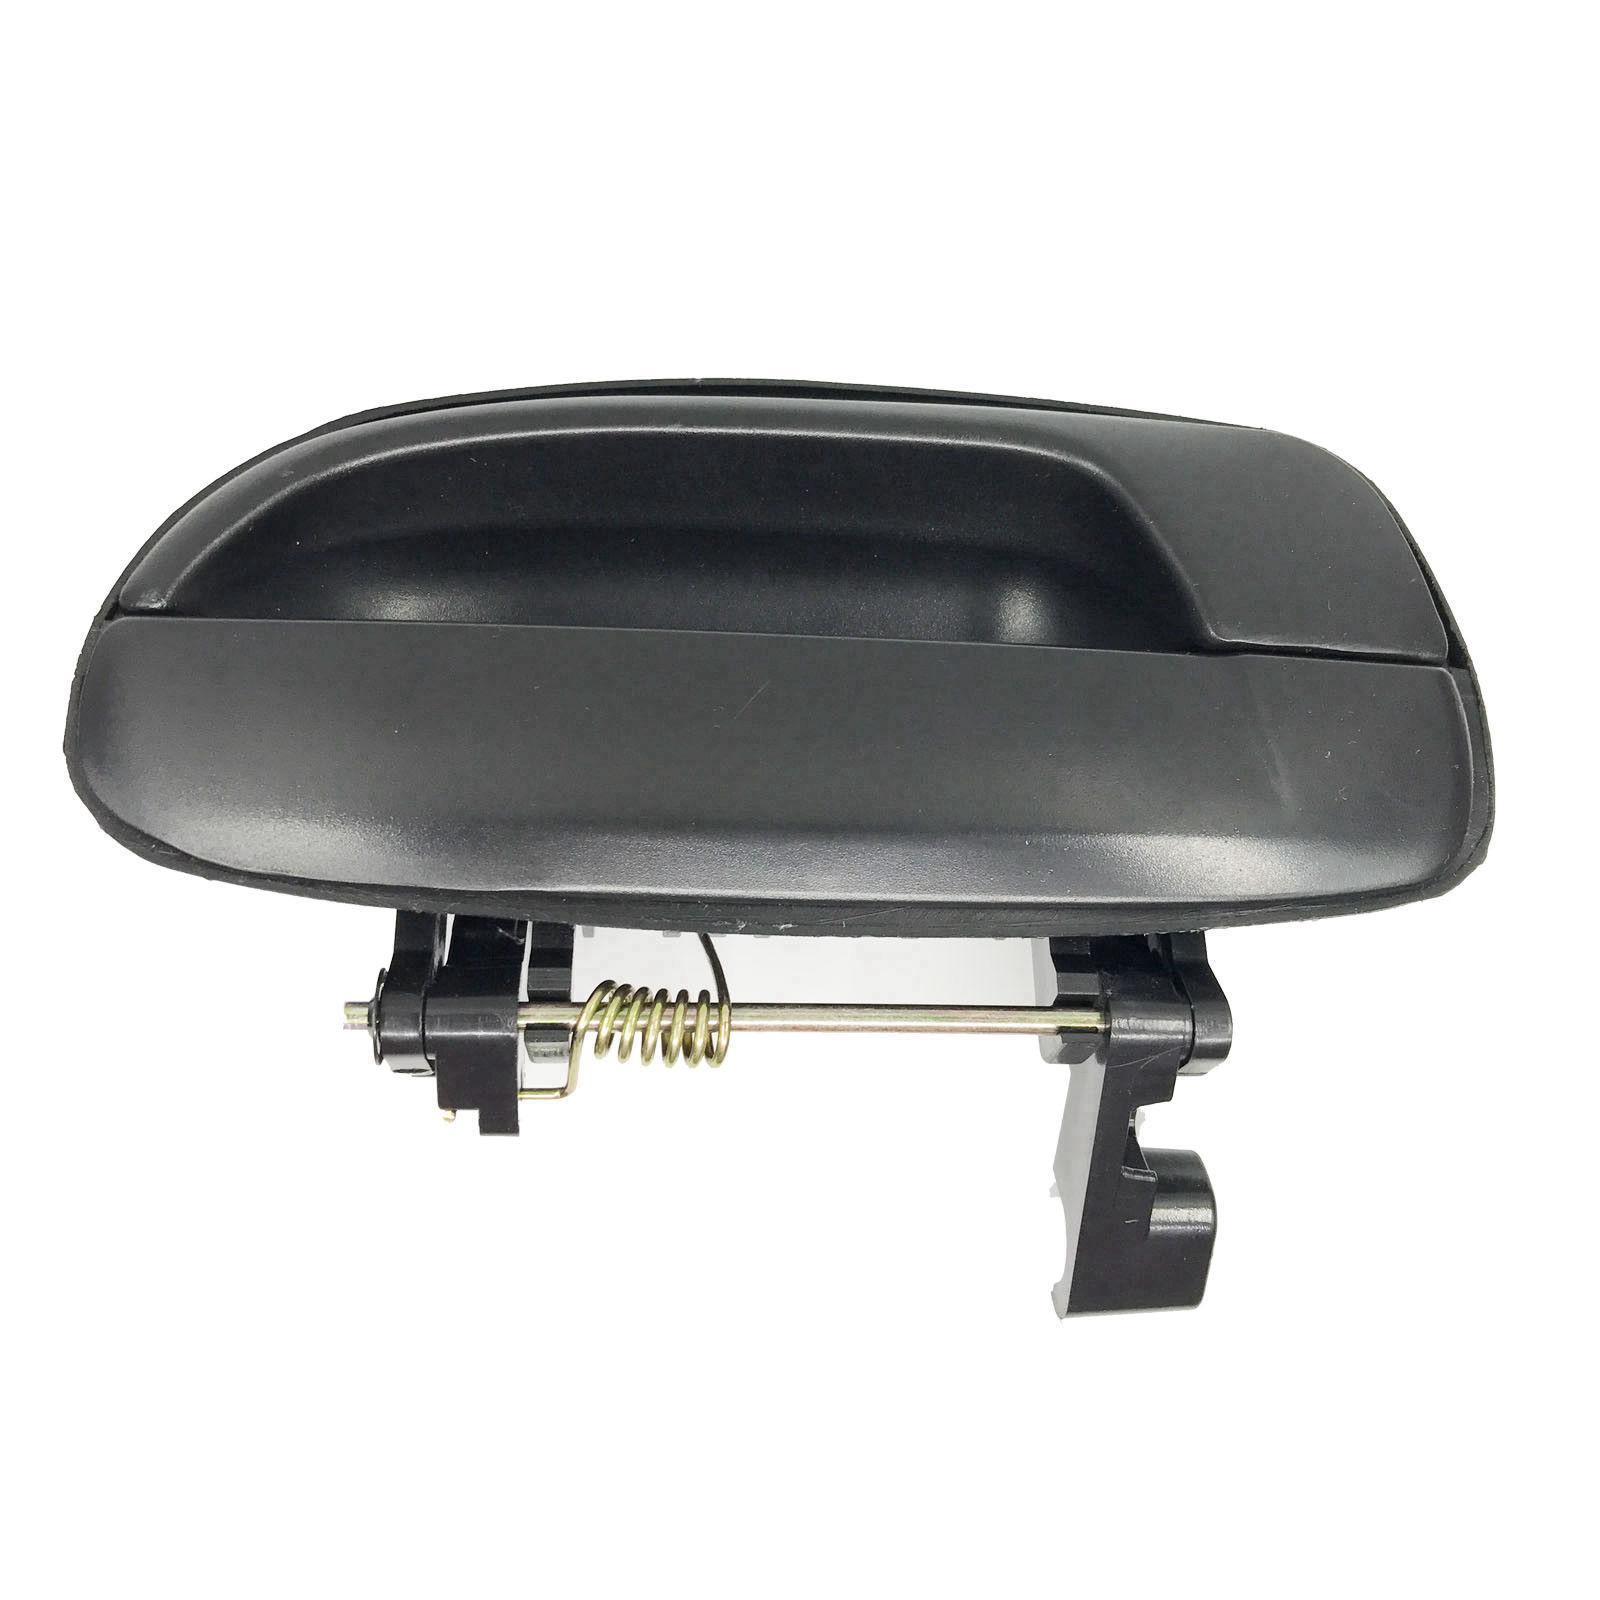 For Hyundai Accent 00 06 Outside Exterior Door Handle Rear Right 83660 25000 New Discount Auto: hyundai accent exterior door handle